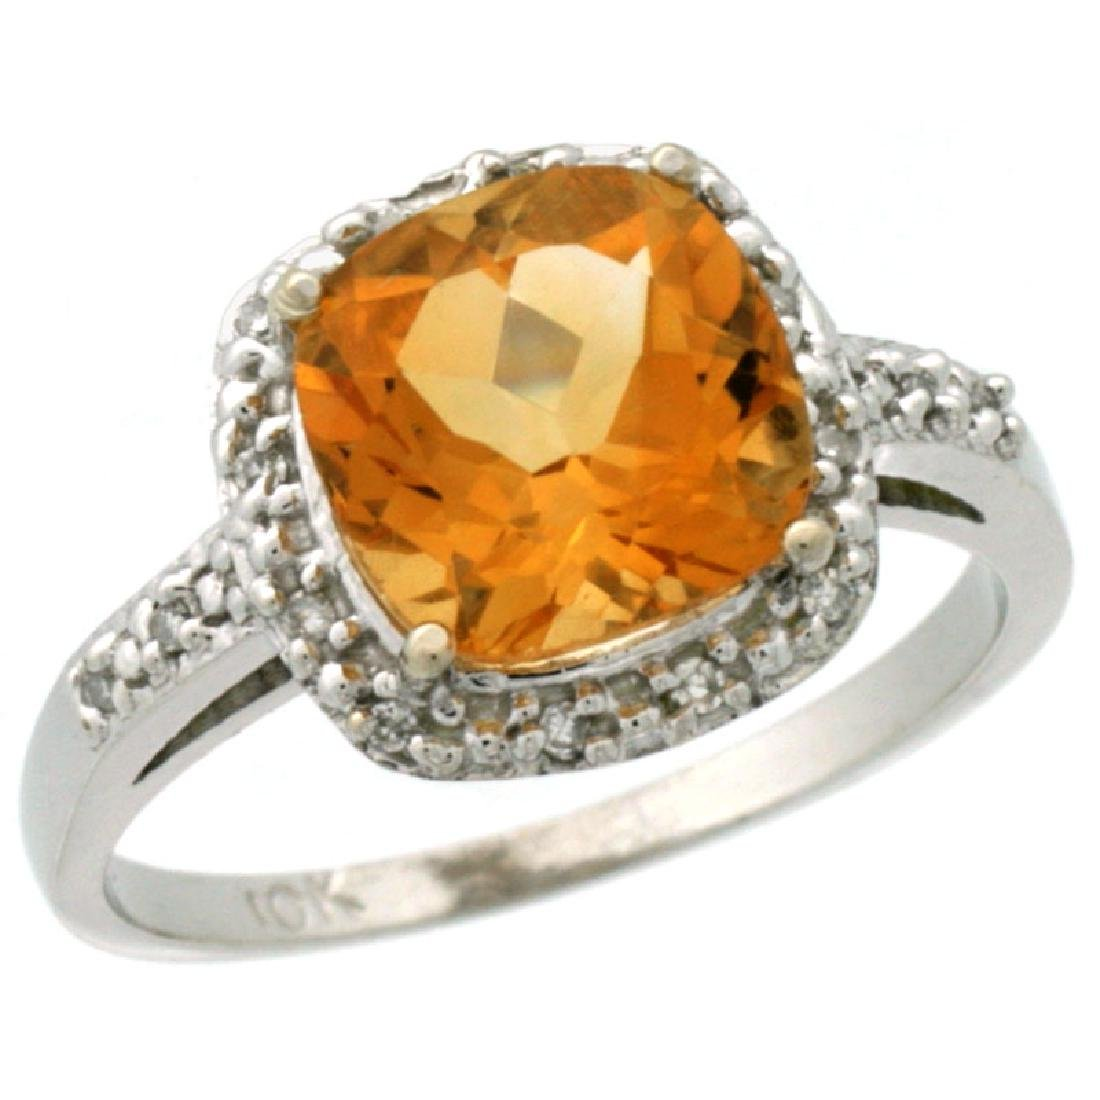 Natural 3.92 ctw Citrine & Diamond Engagement Ring 10K